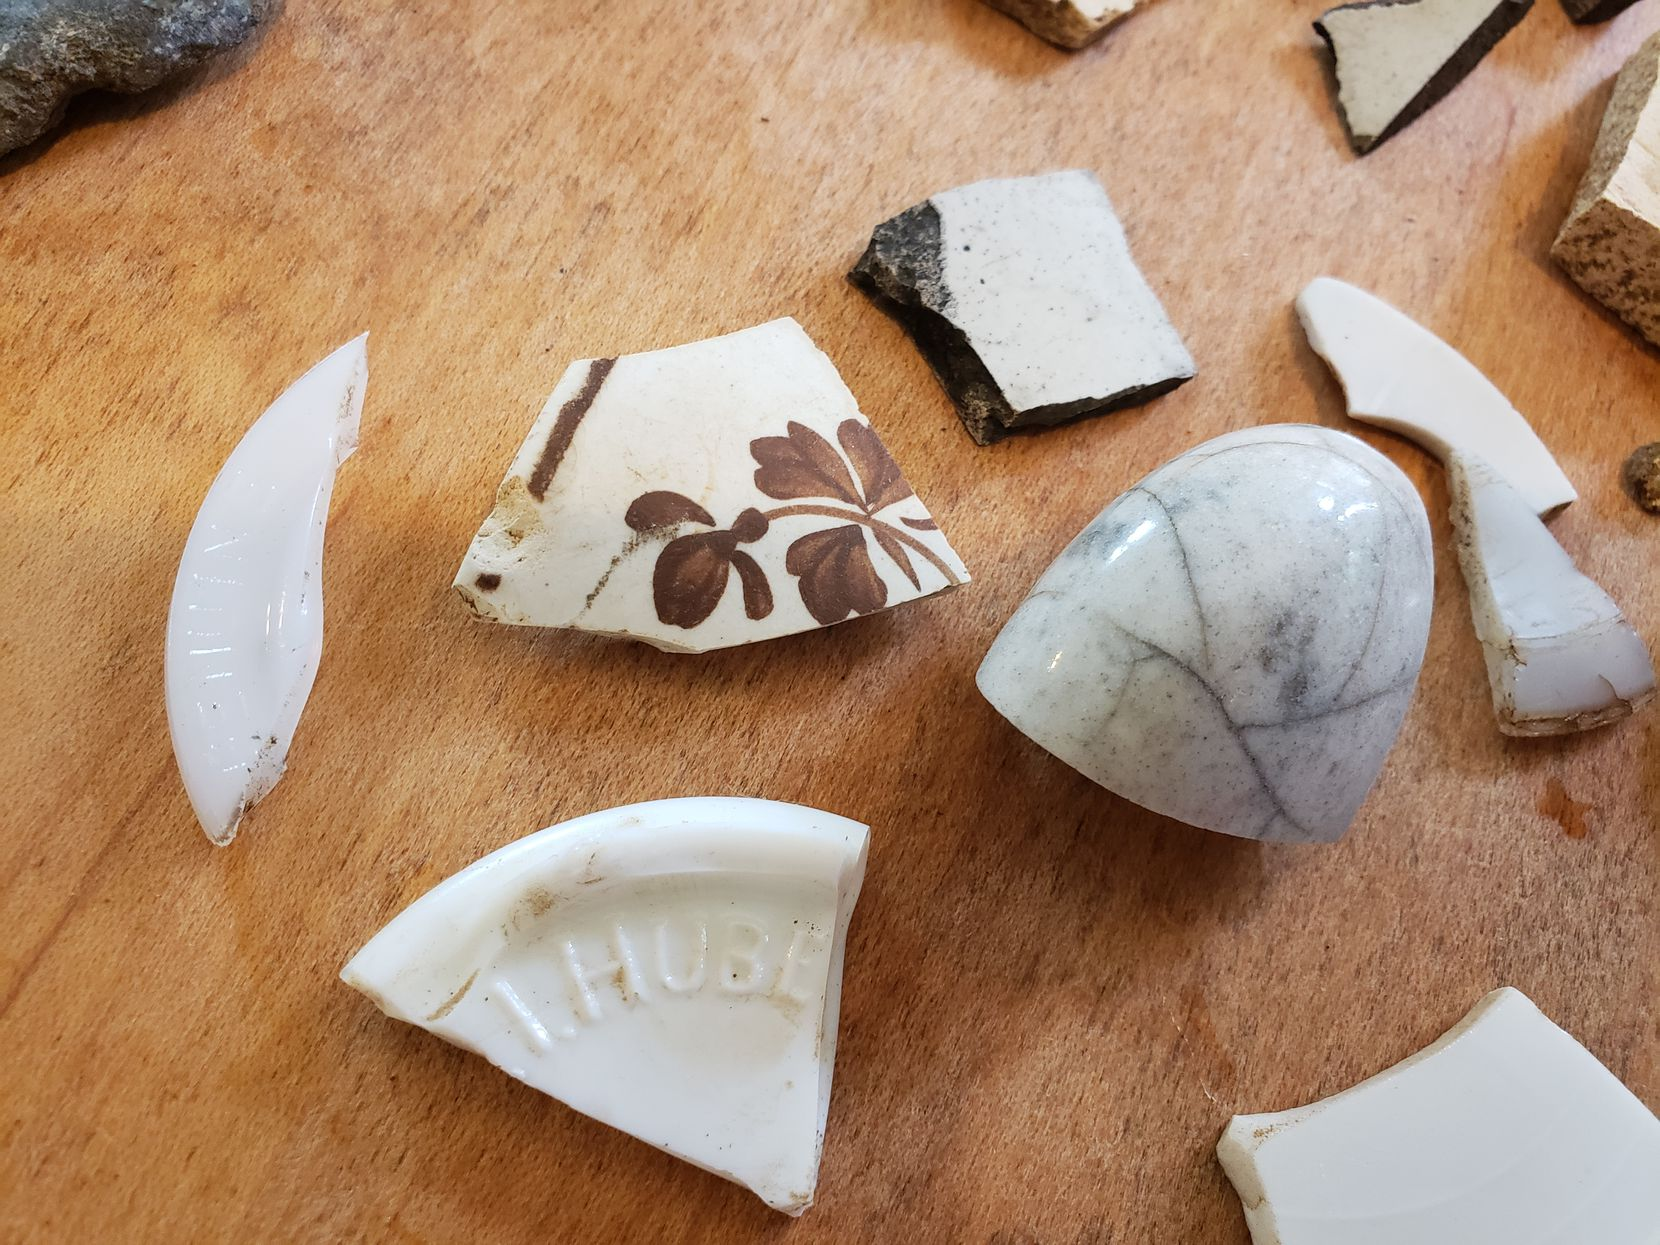 While excavating their yard for the family garden, the Marshes found pieces of pottery, possibly belonging to a farmhouse that may have stood on the property.